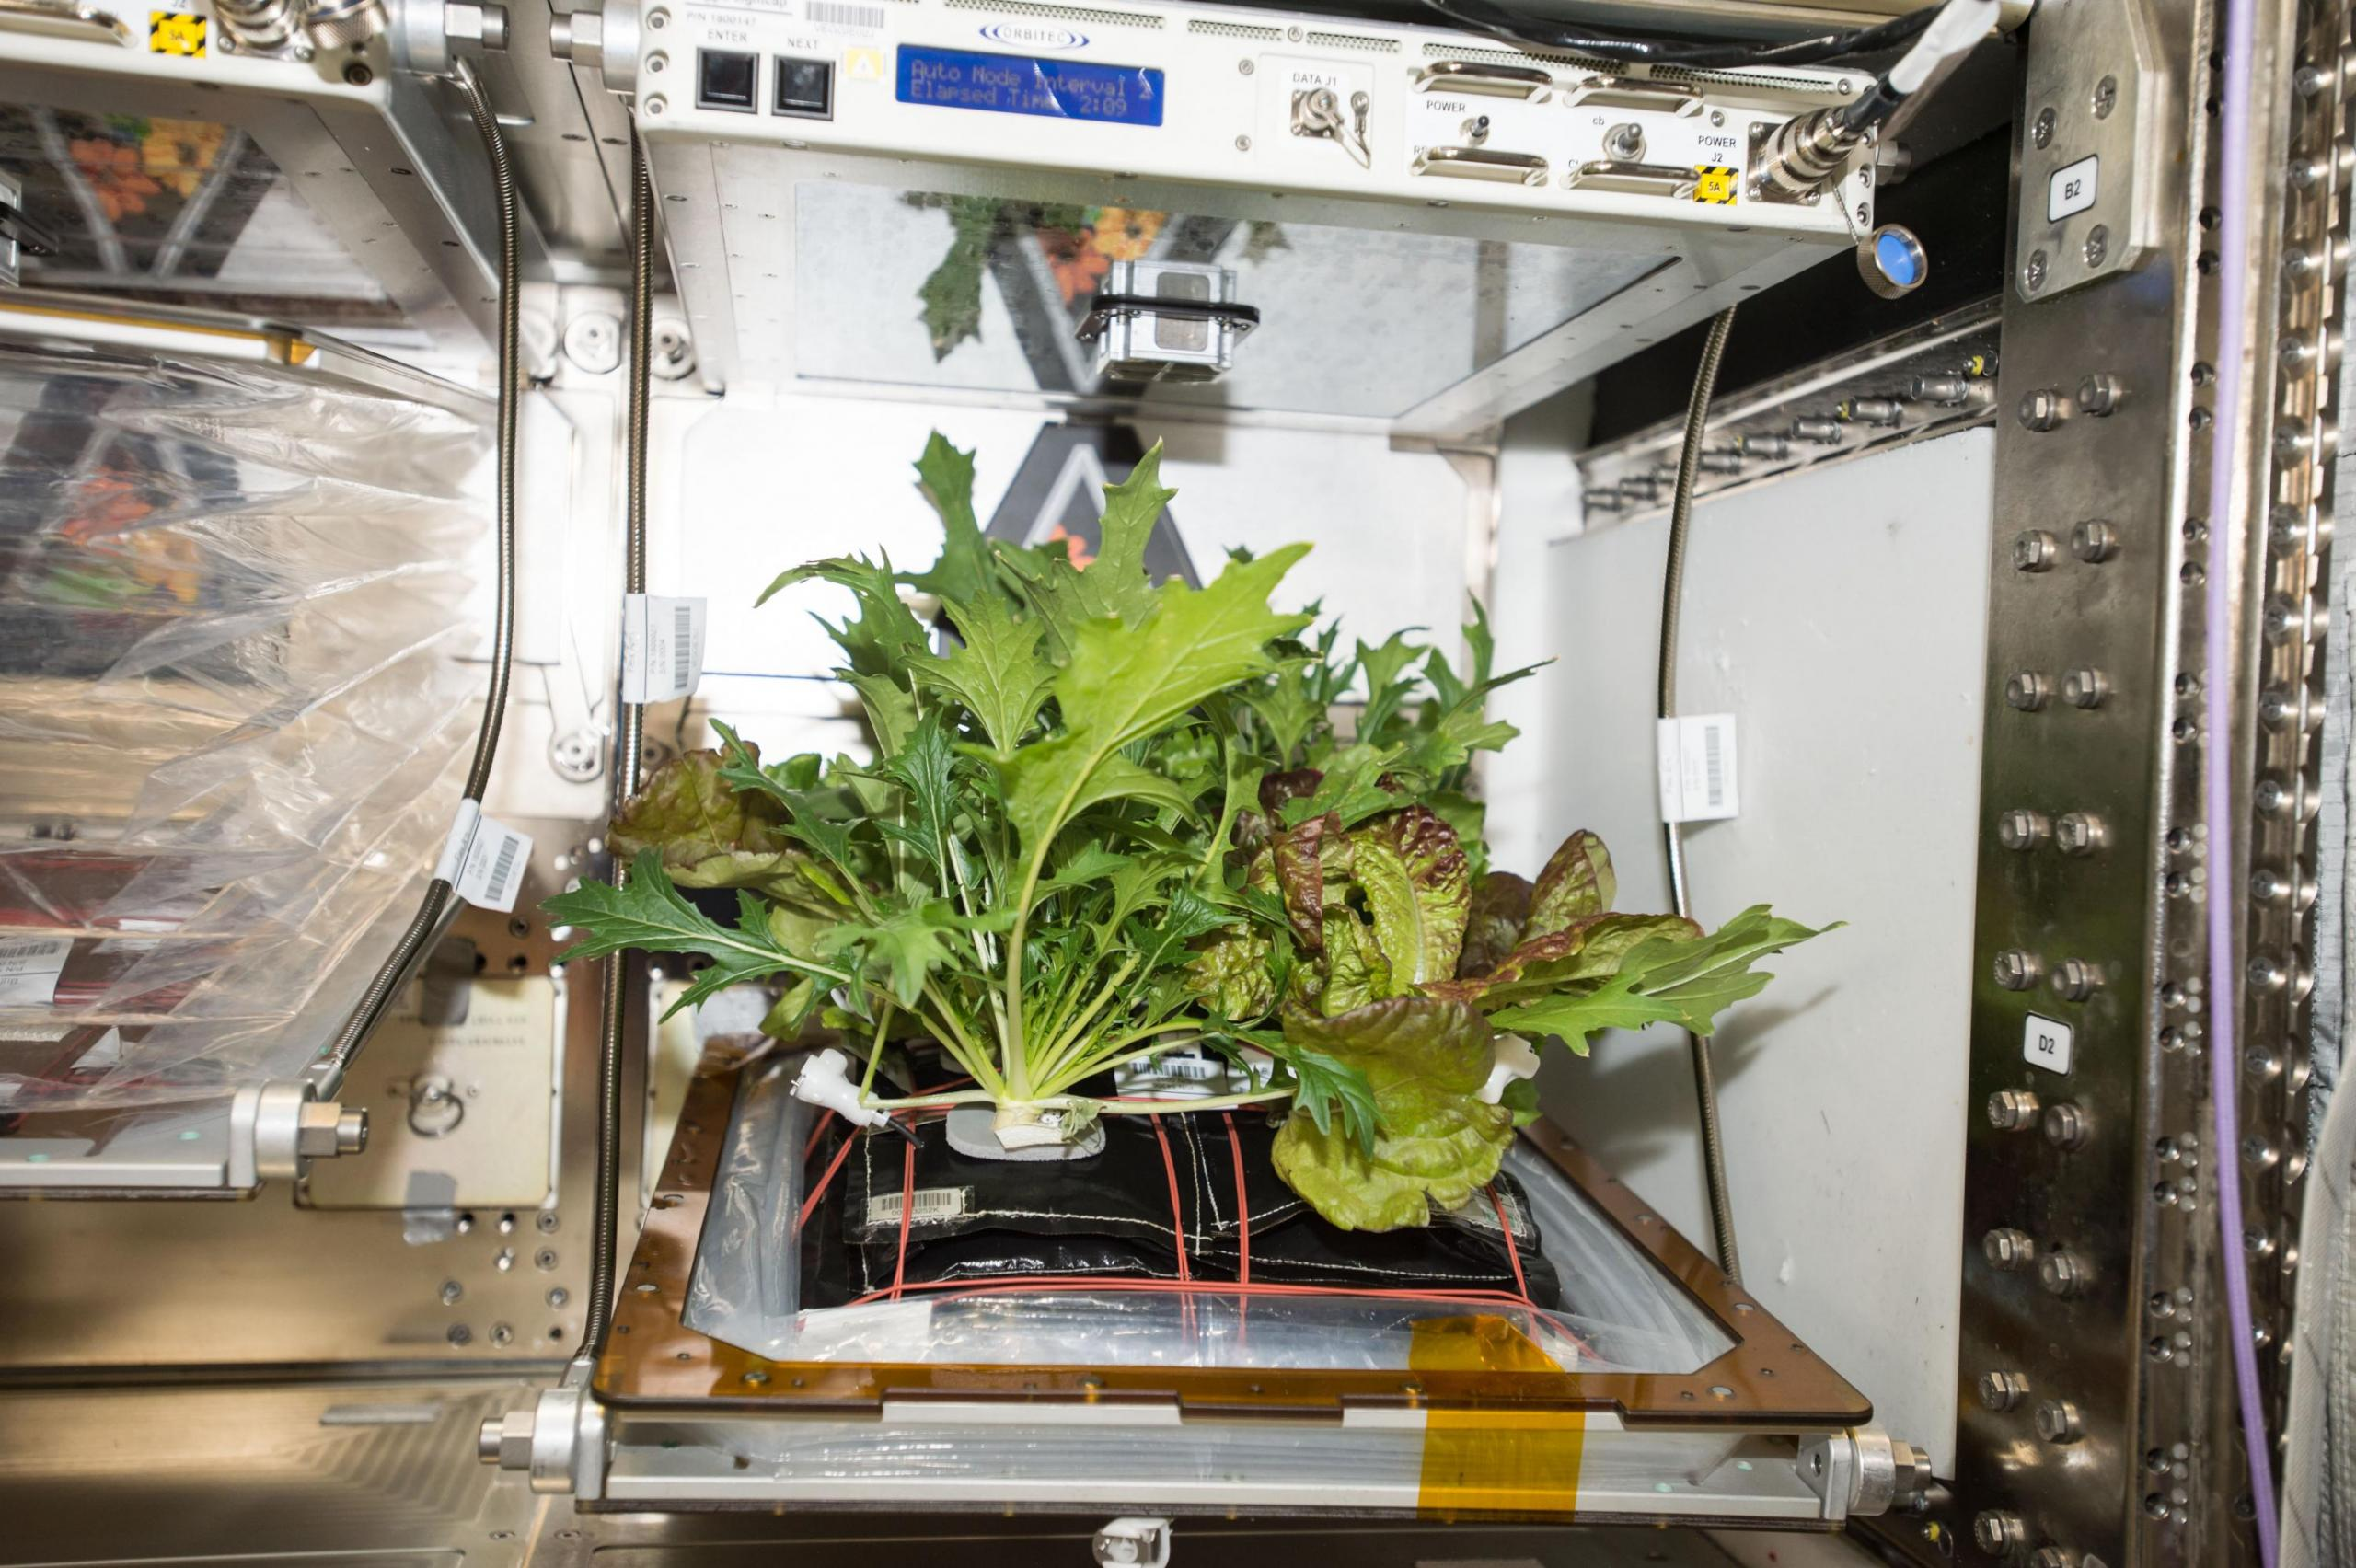 Laboratory chamber with lush green plants growing from a test platform.